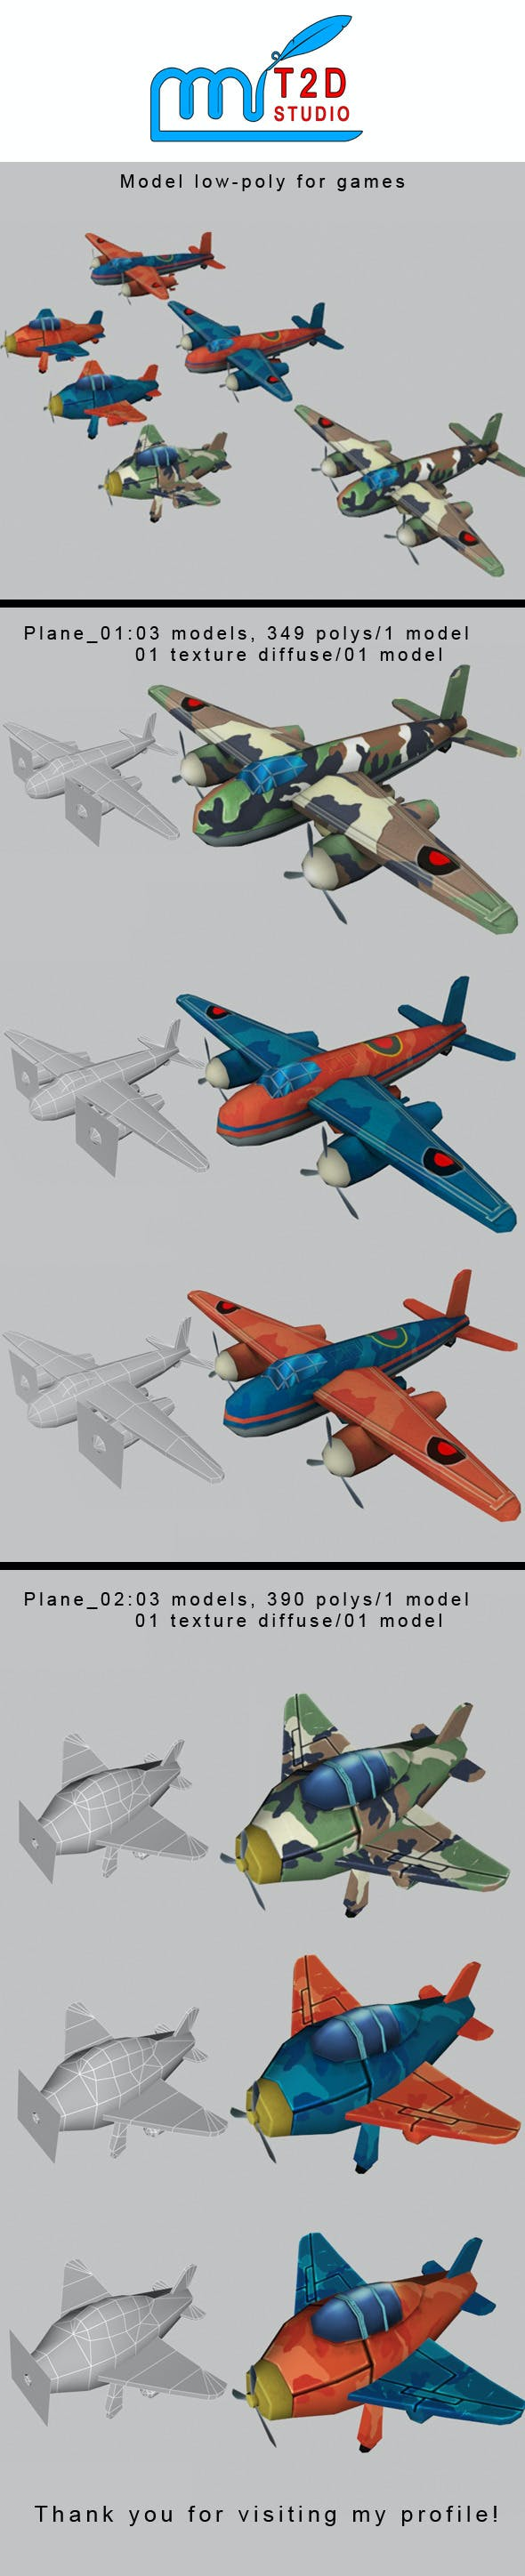 plane low-poly - 3DOcean Item for Sale